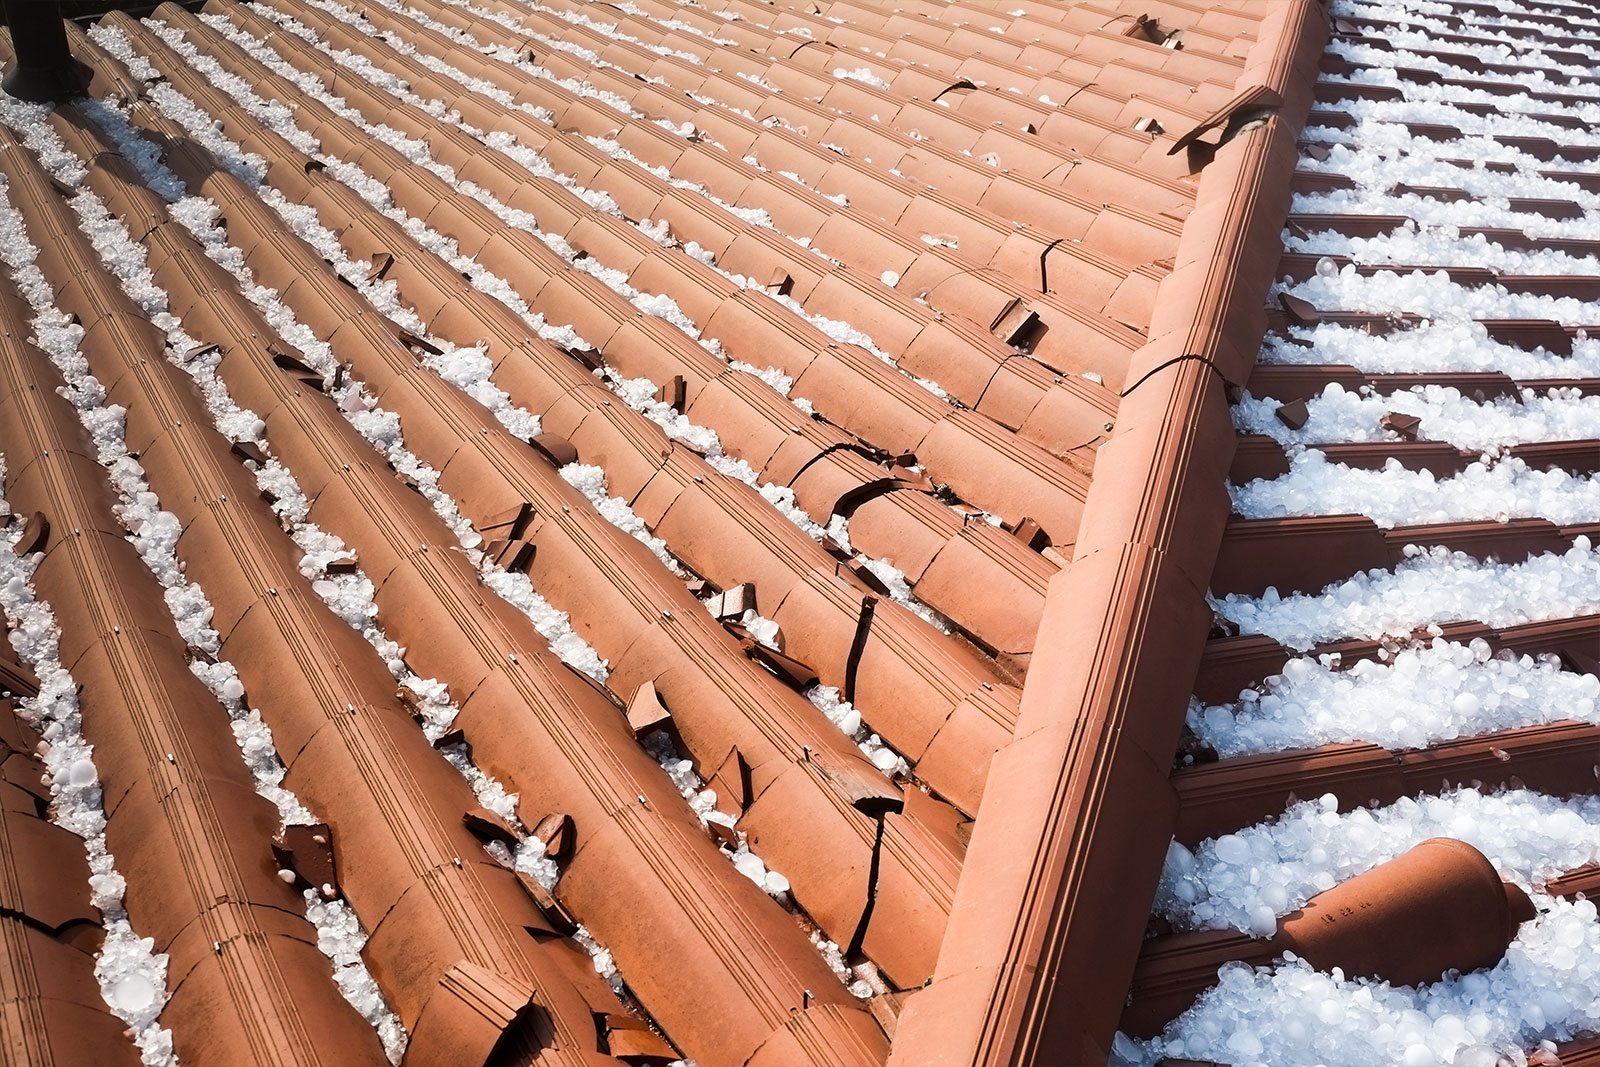 HAIL AND SNOW STORM REPAIR LEADS